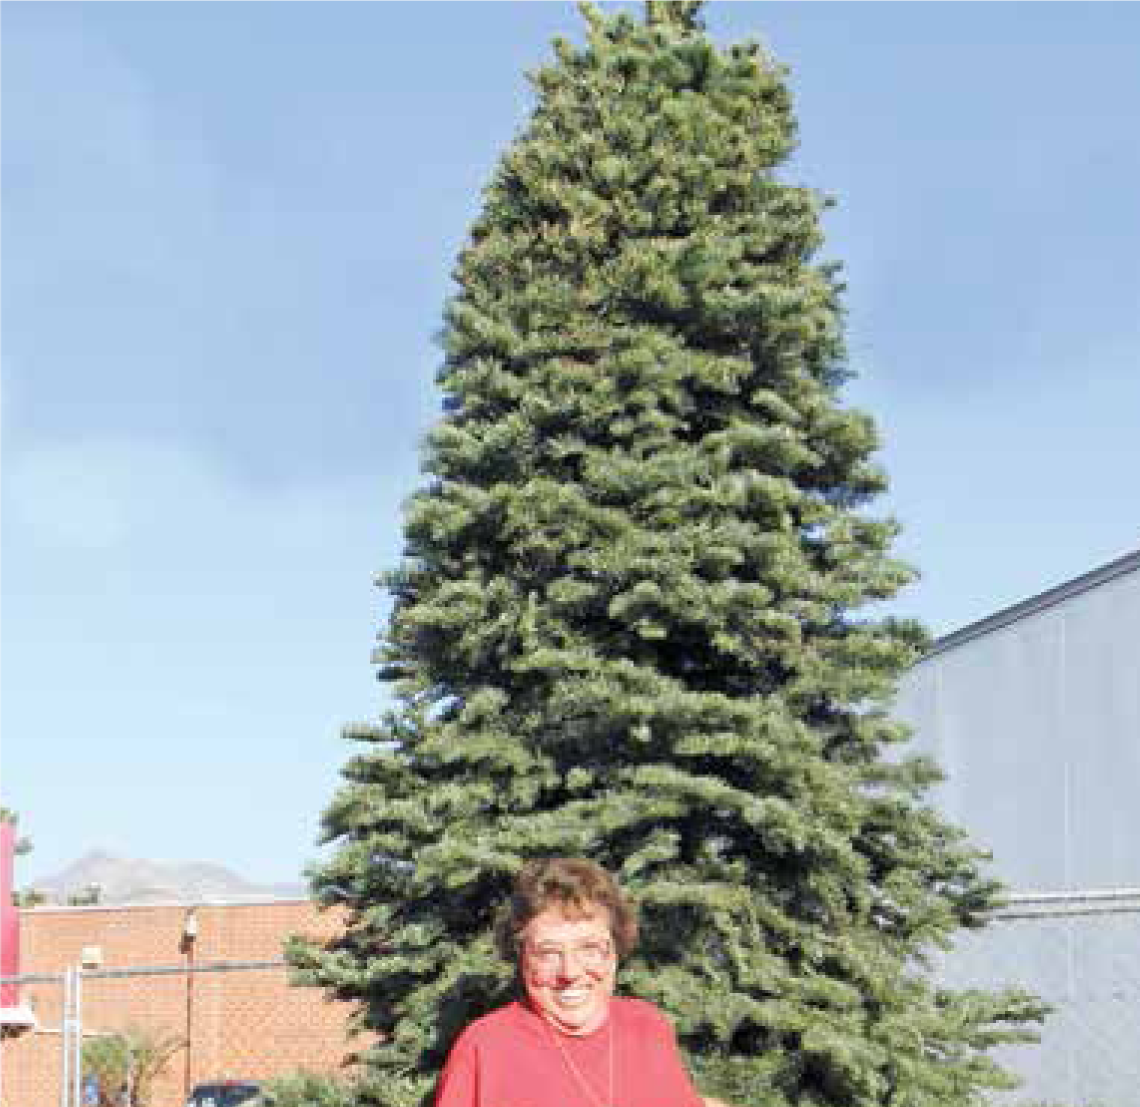 This year's 10-foot Christmas tree donated by Kathy Anthony of Kathy's Trees and awaiting your decorations to make it a beautiful sight when you enter Sunland-Tujunga from the south.